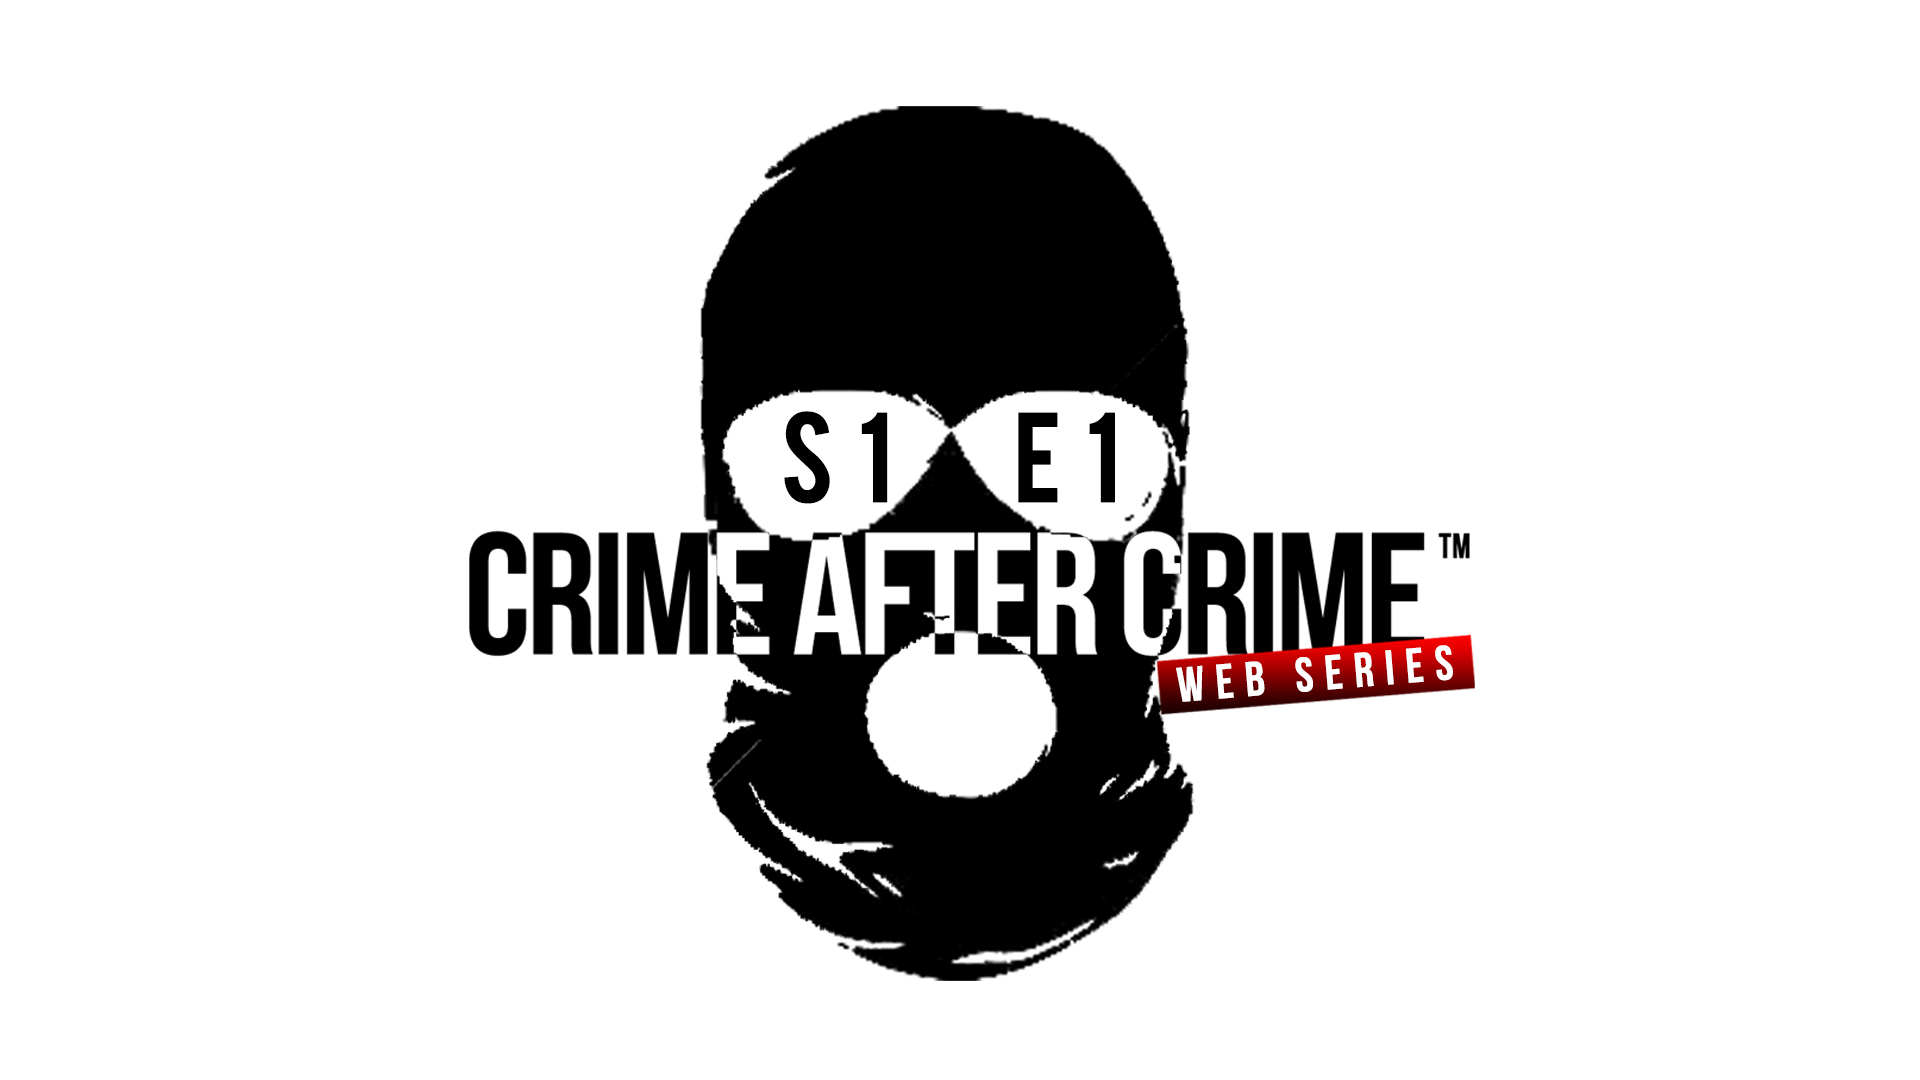 crime after crime web series